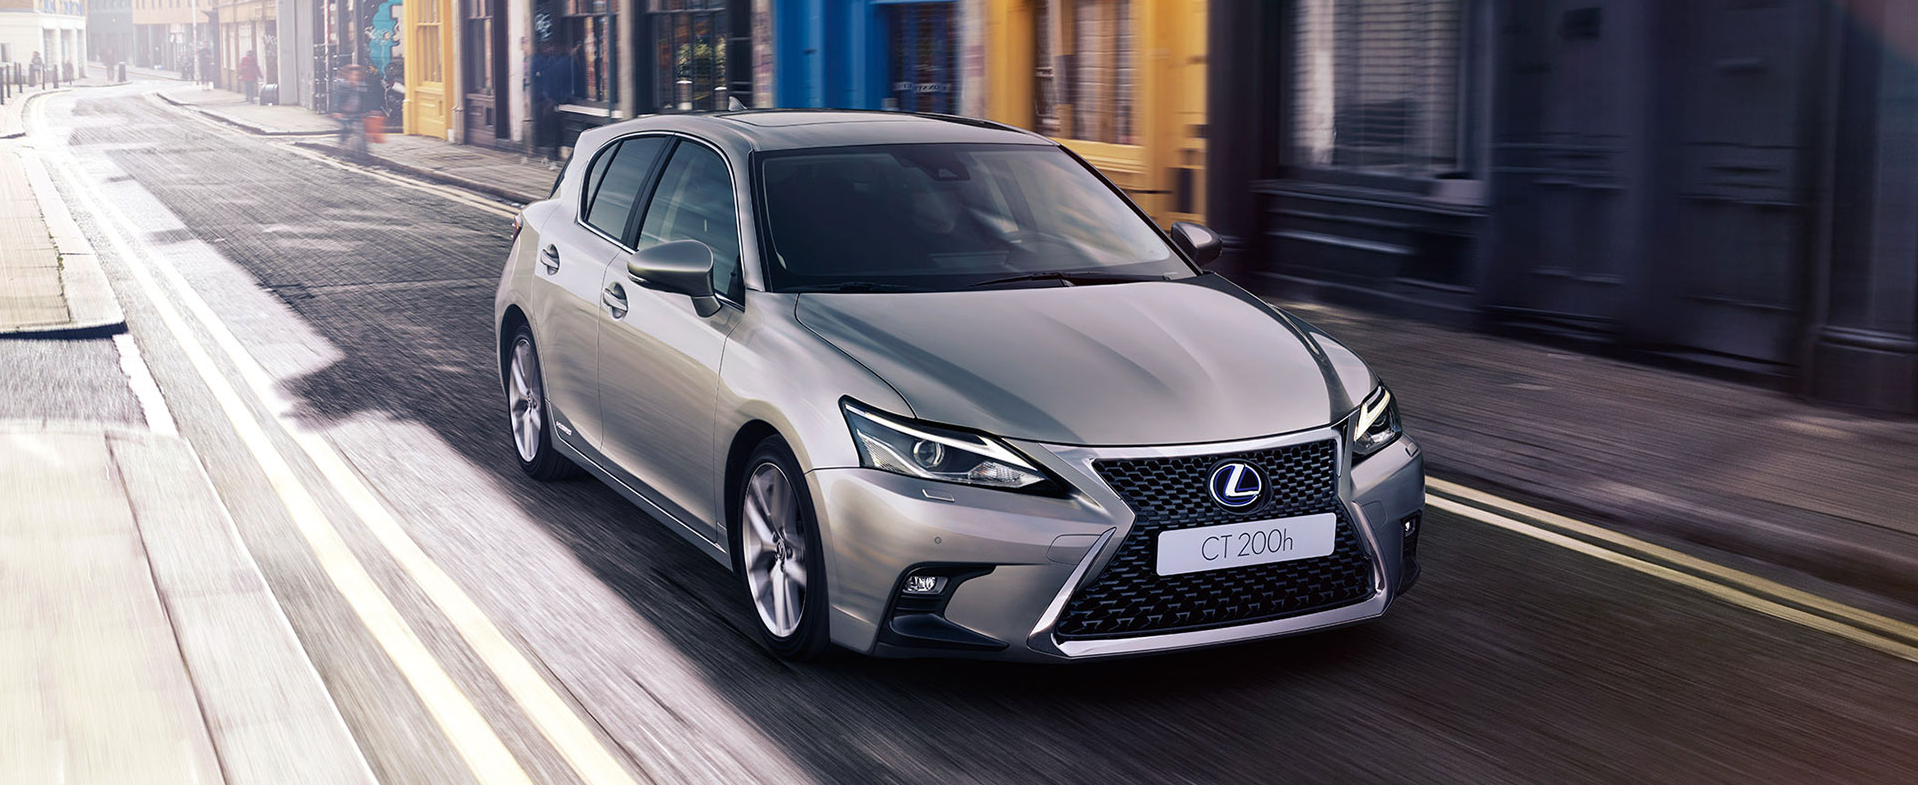 lateral lexus ct200h